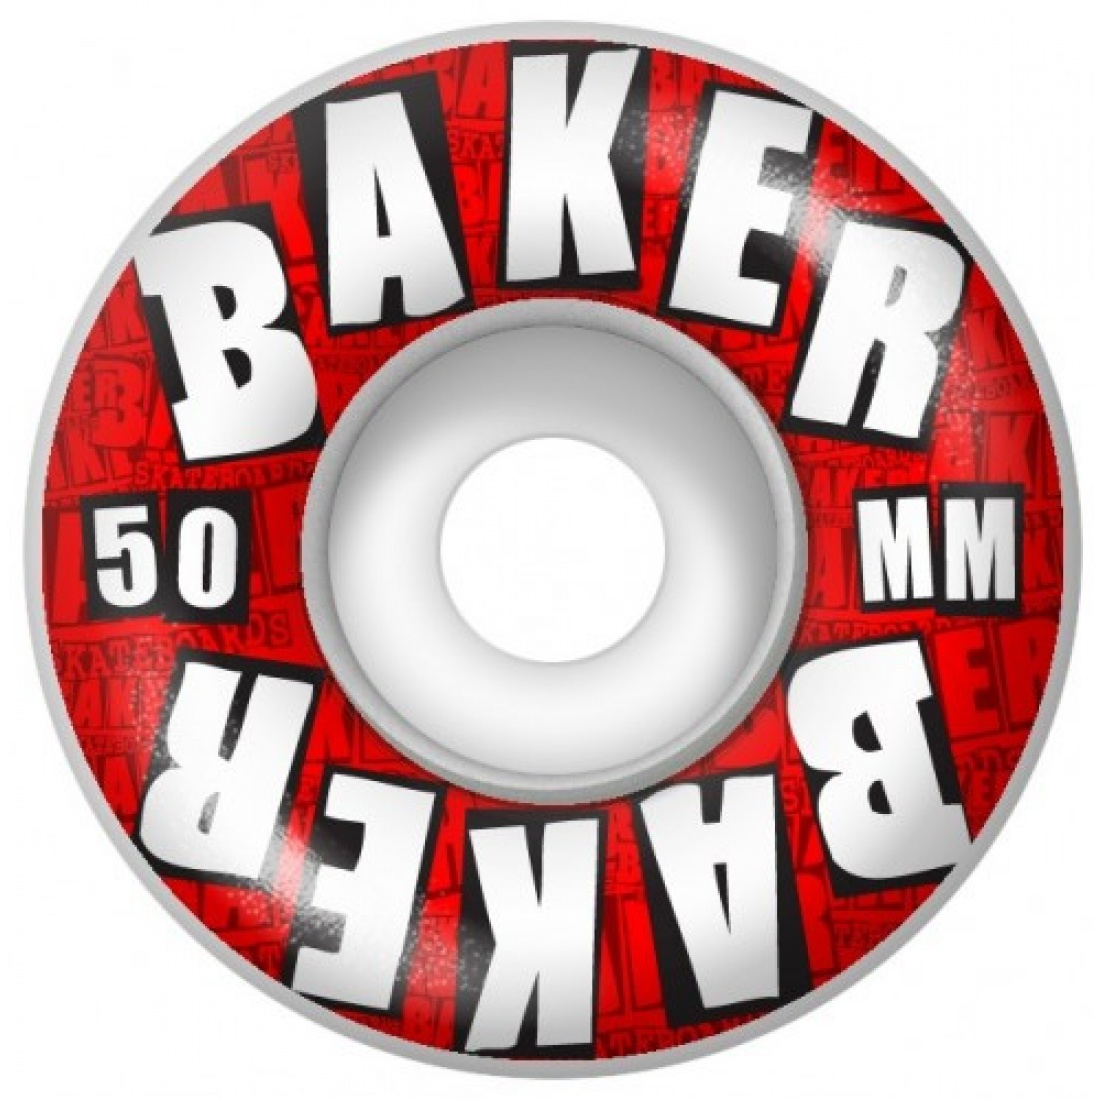 BKR-Blocks Red 50mm Wheels